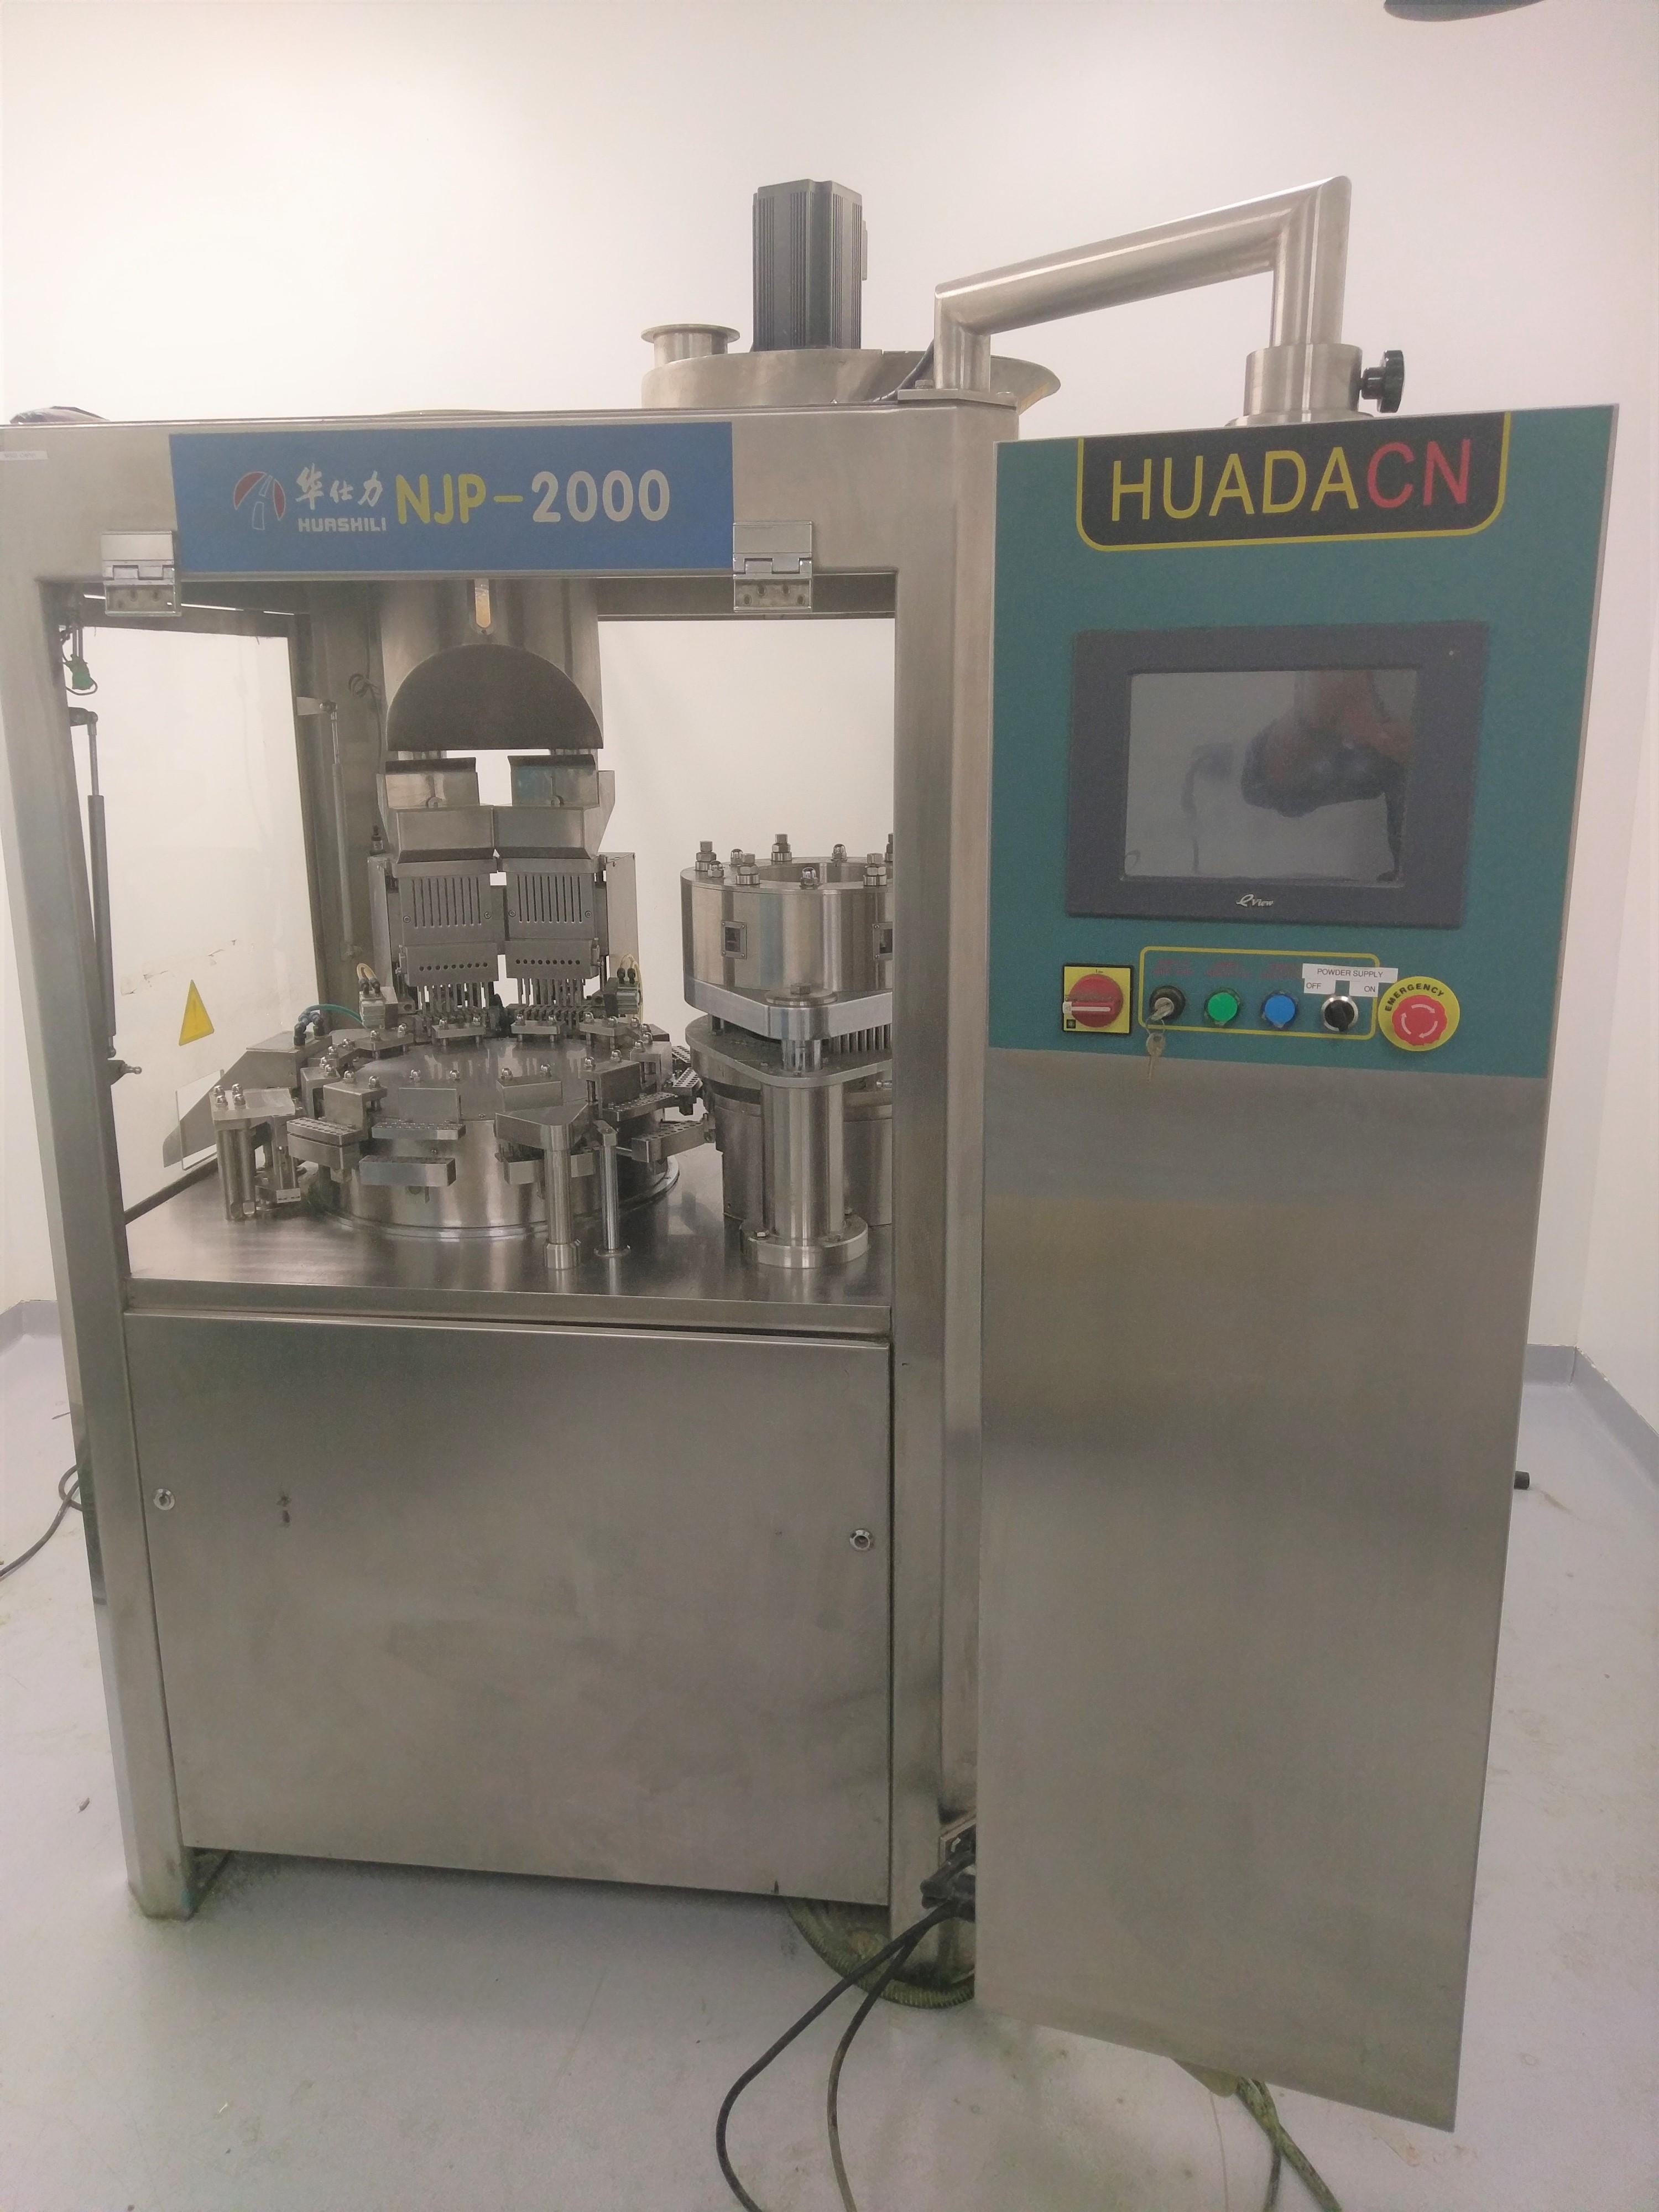 Fully automatic encapsulator with 00, 0, 1 and 2 change parts